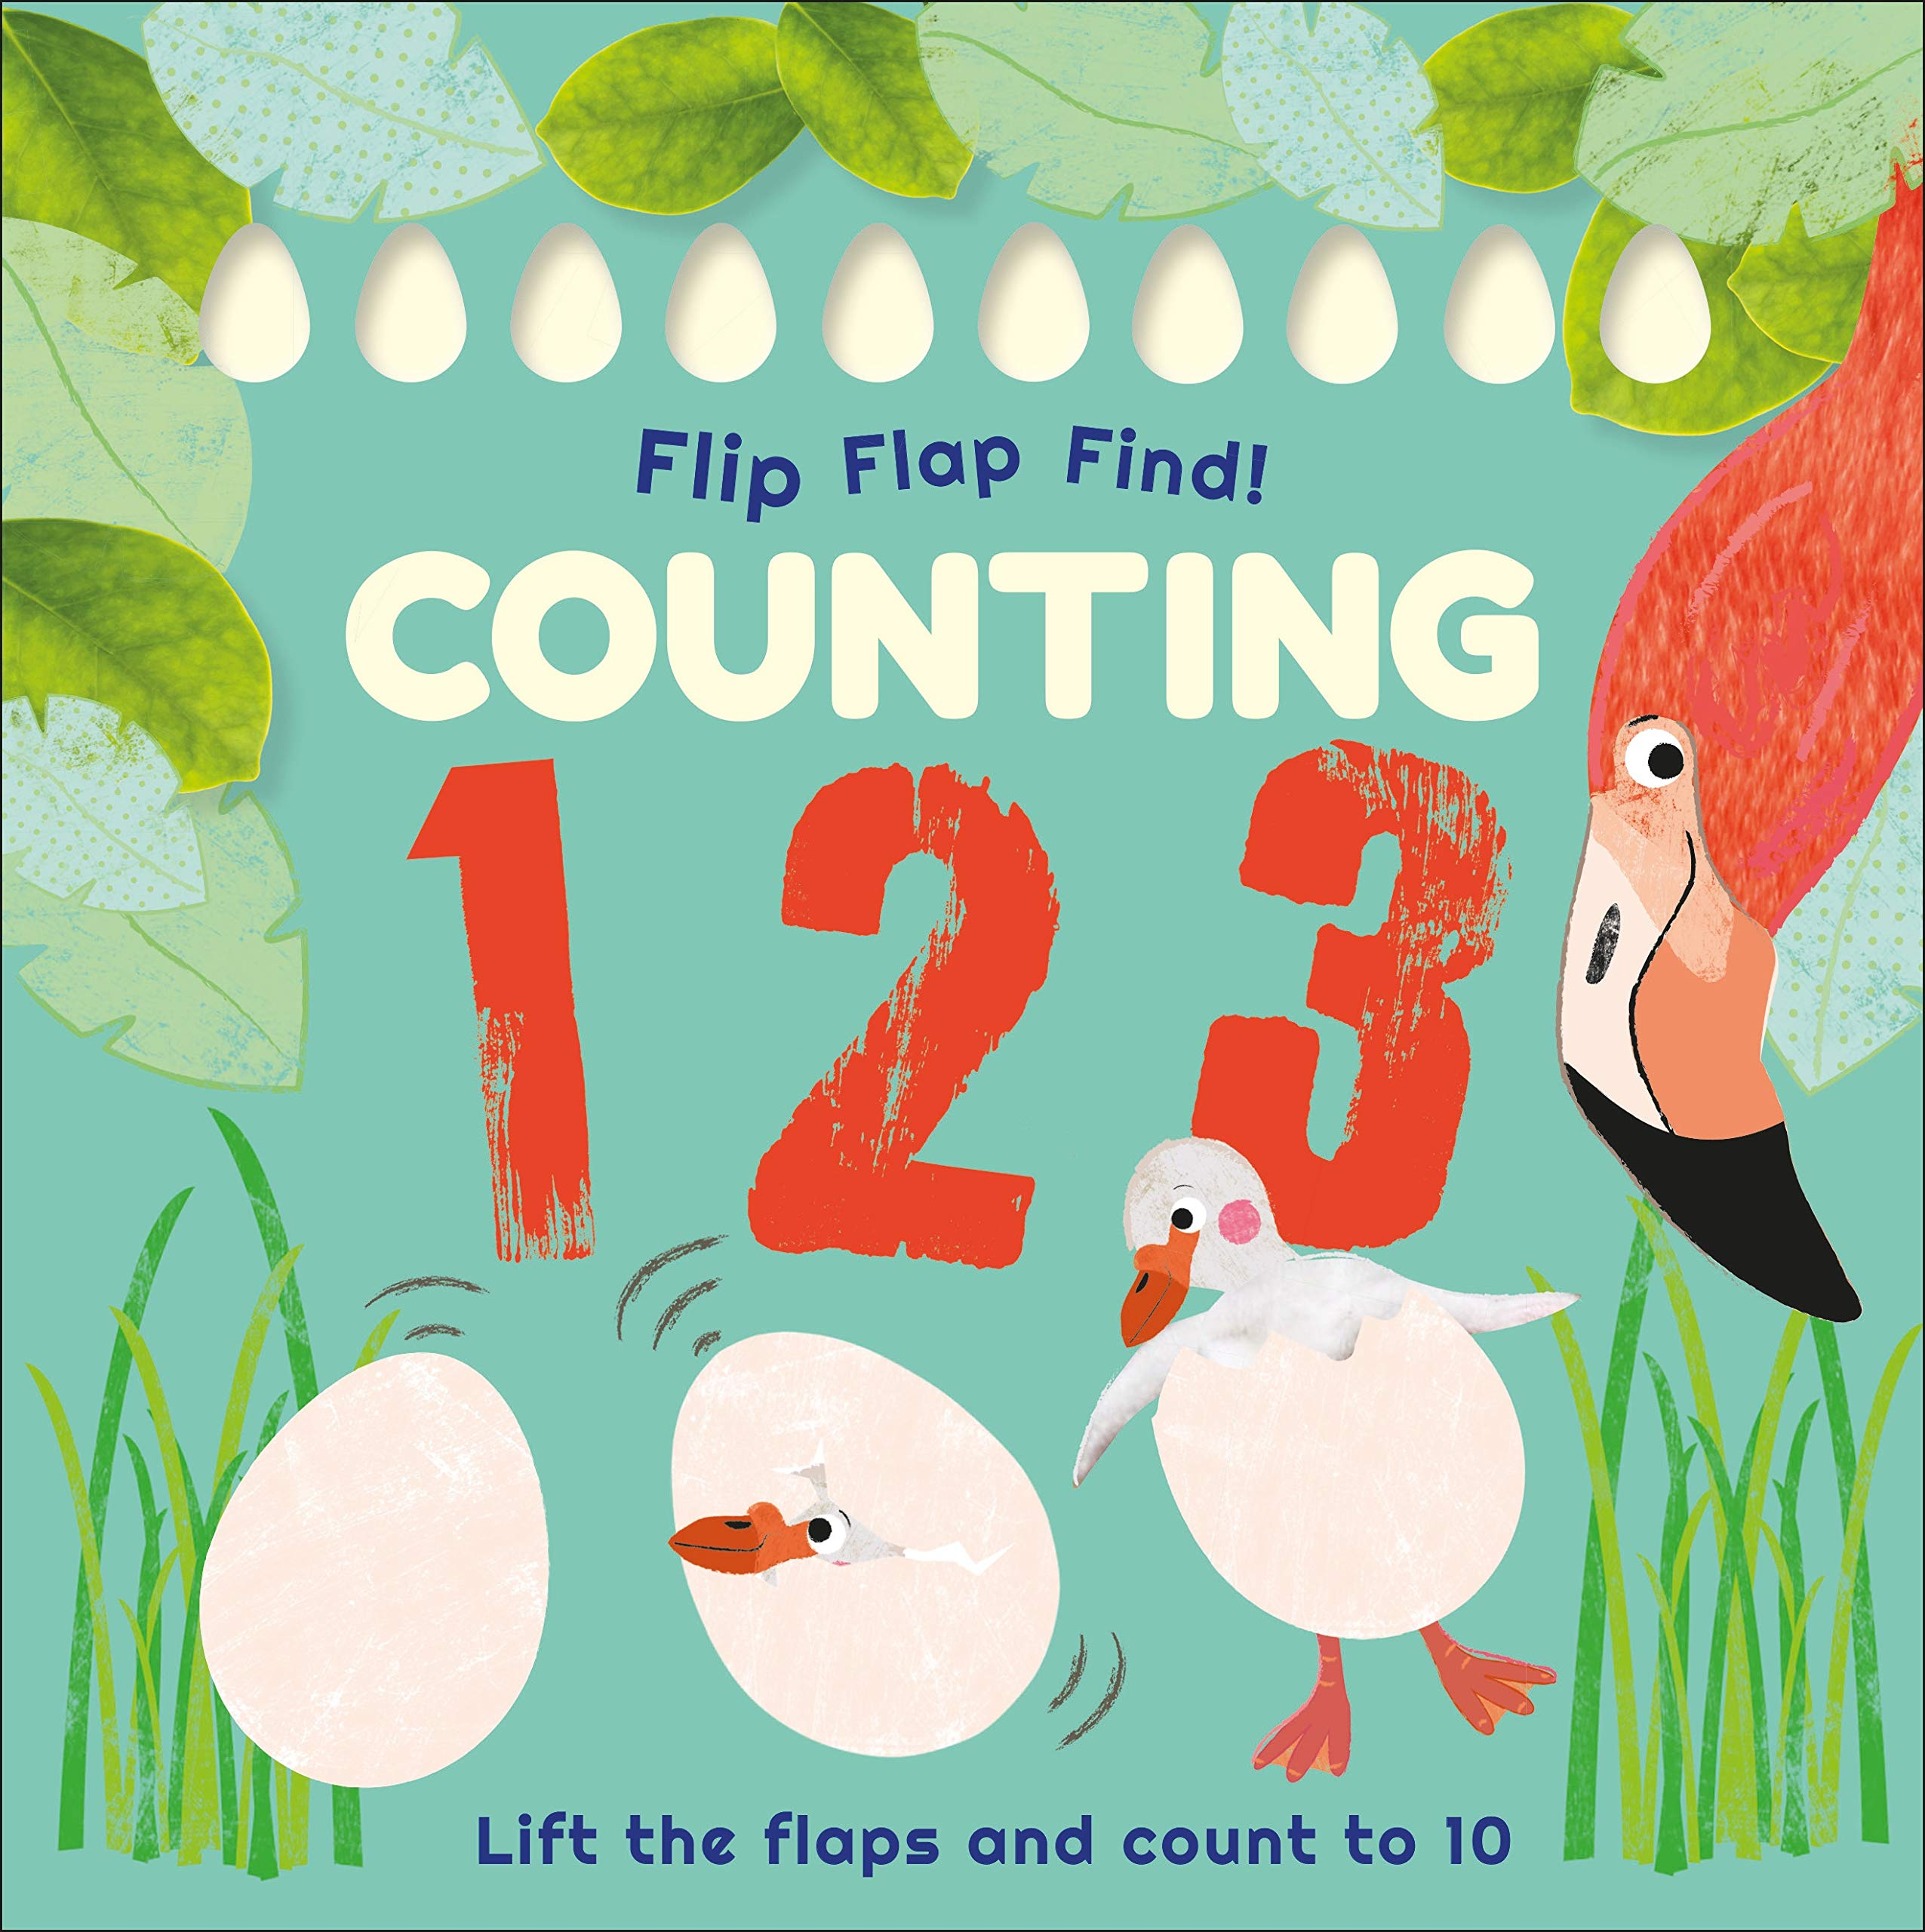 flip-flap-find-counting-1-2-3-lift-the-flaps-and-count-to-10